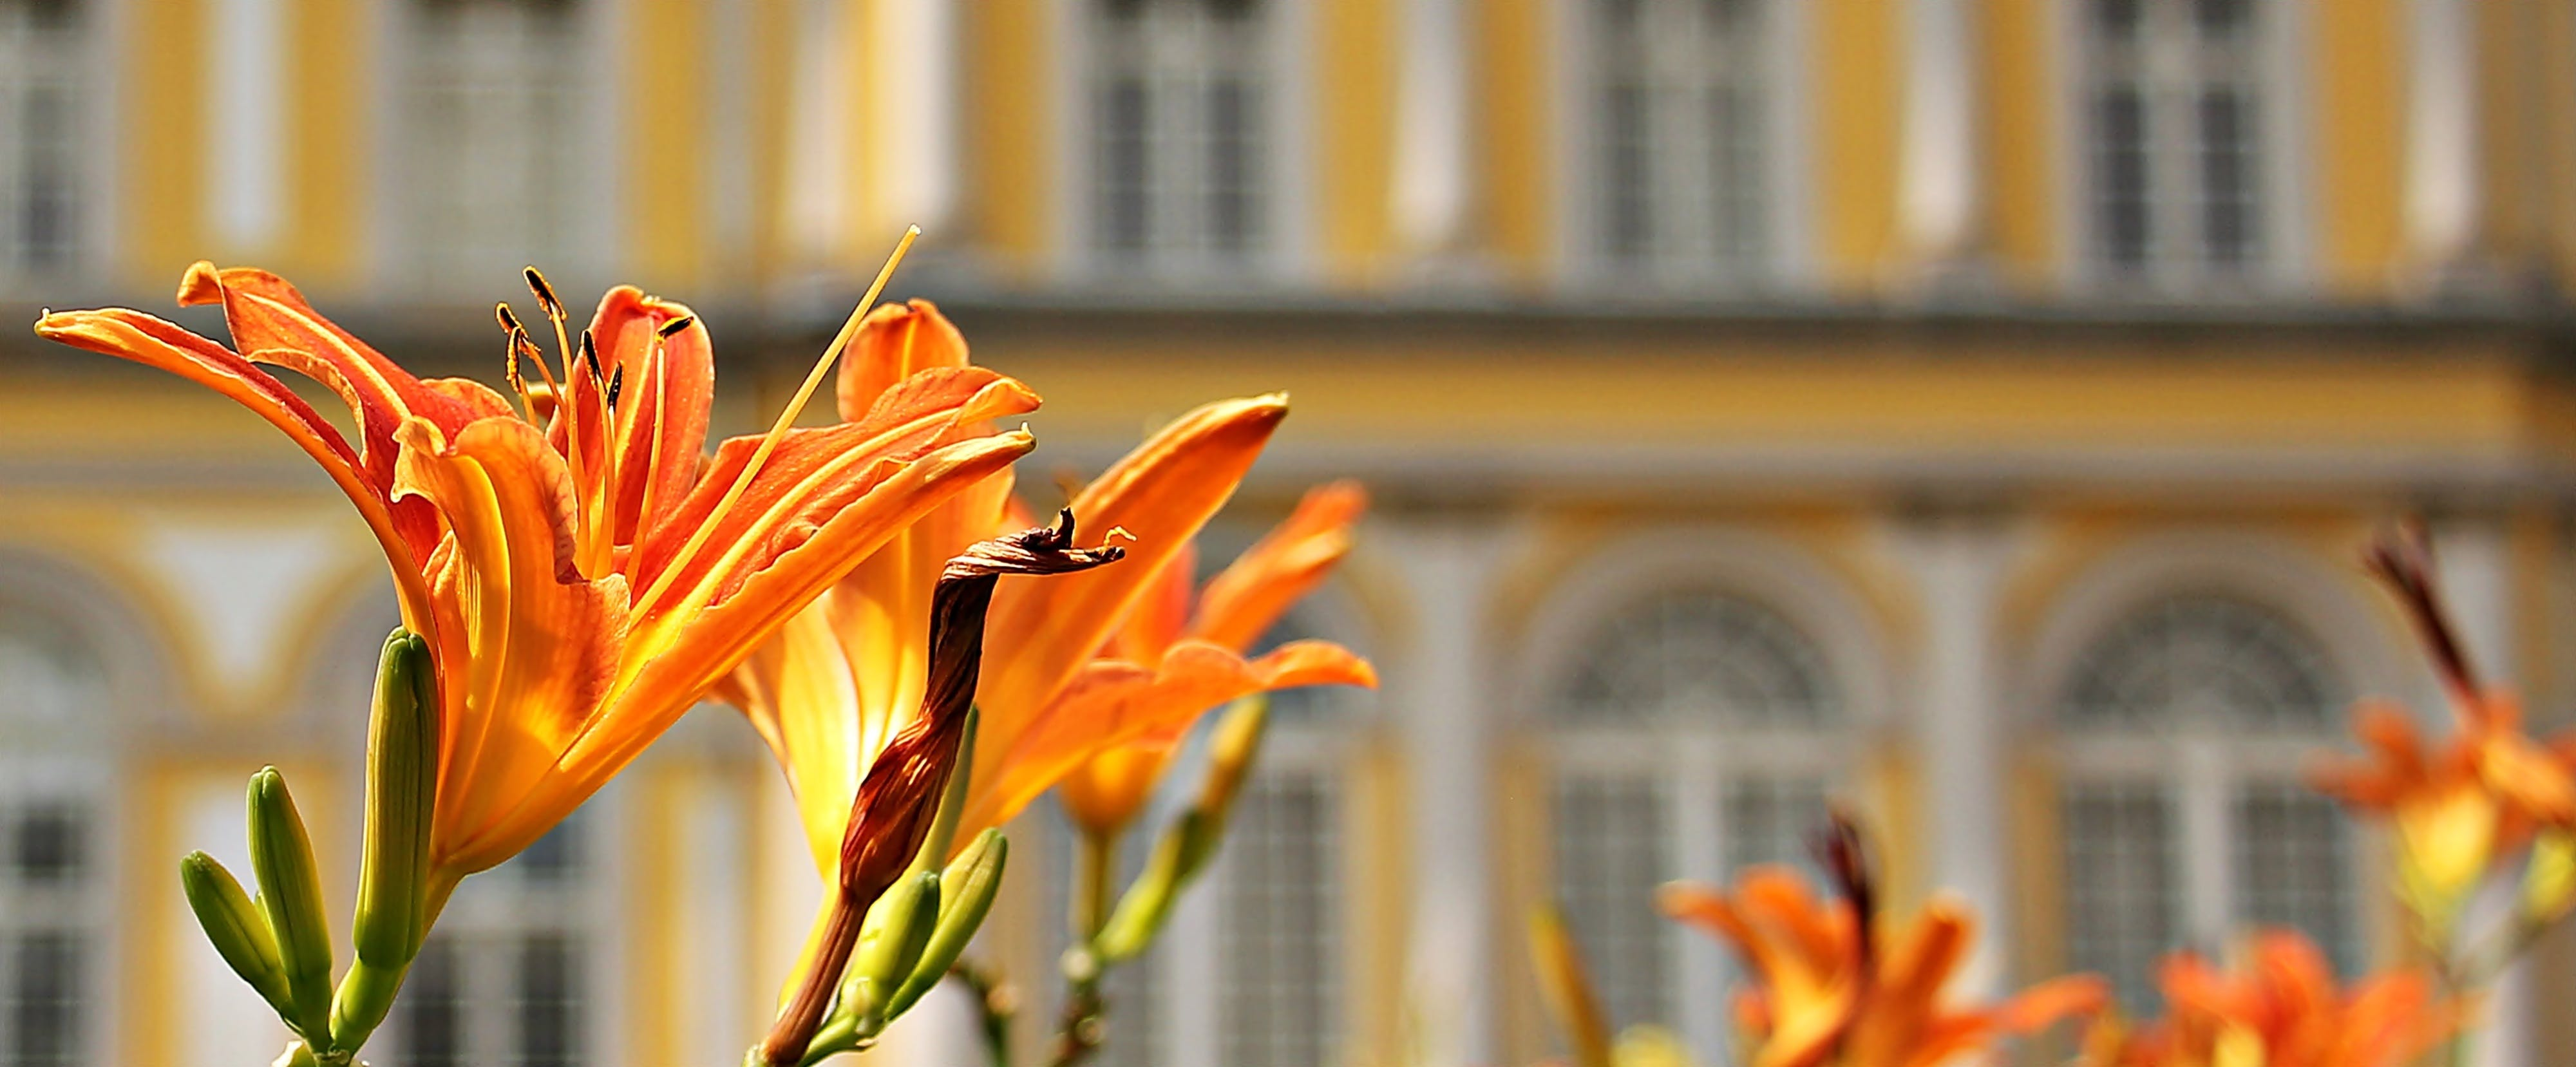 Orange Flowers Beside Buildings during Daytime